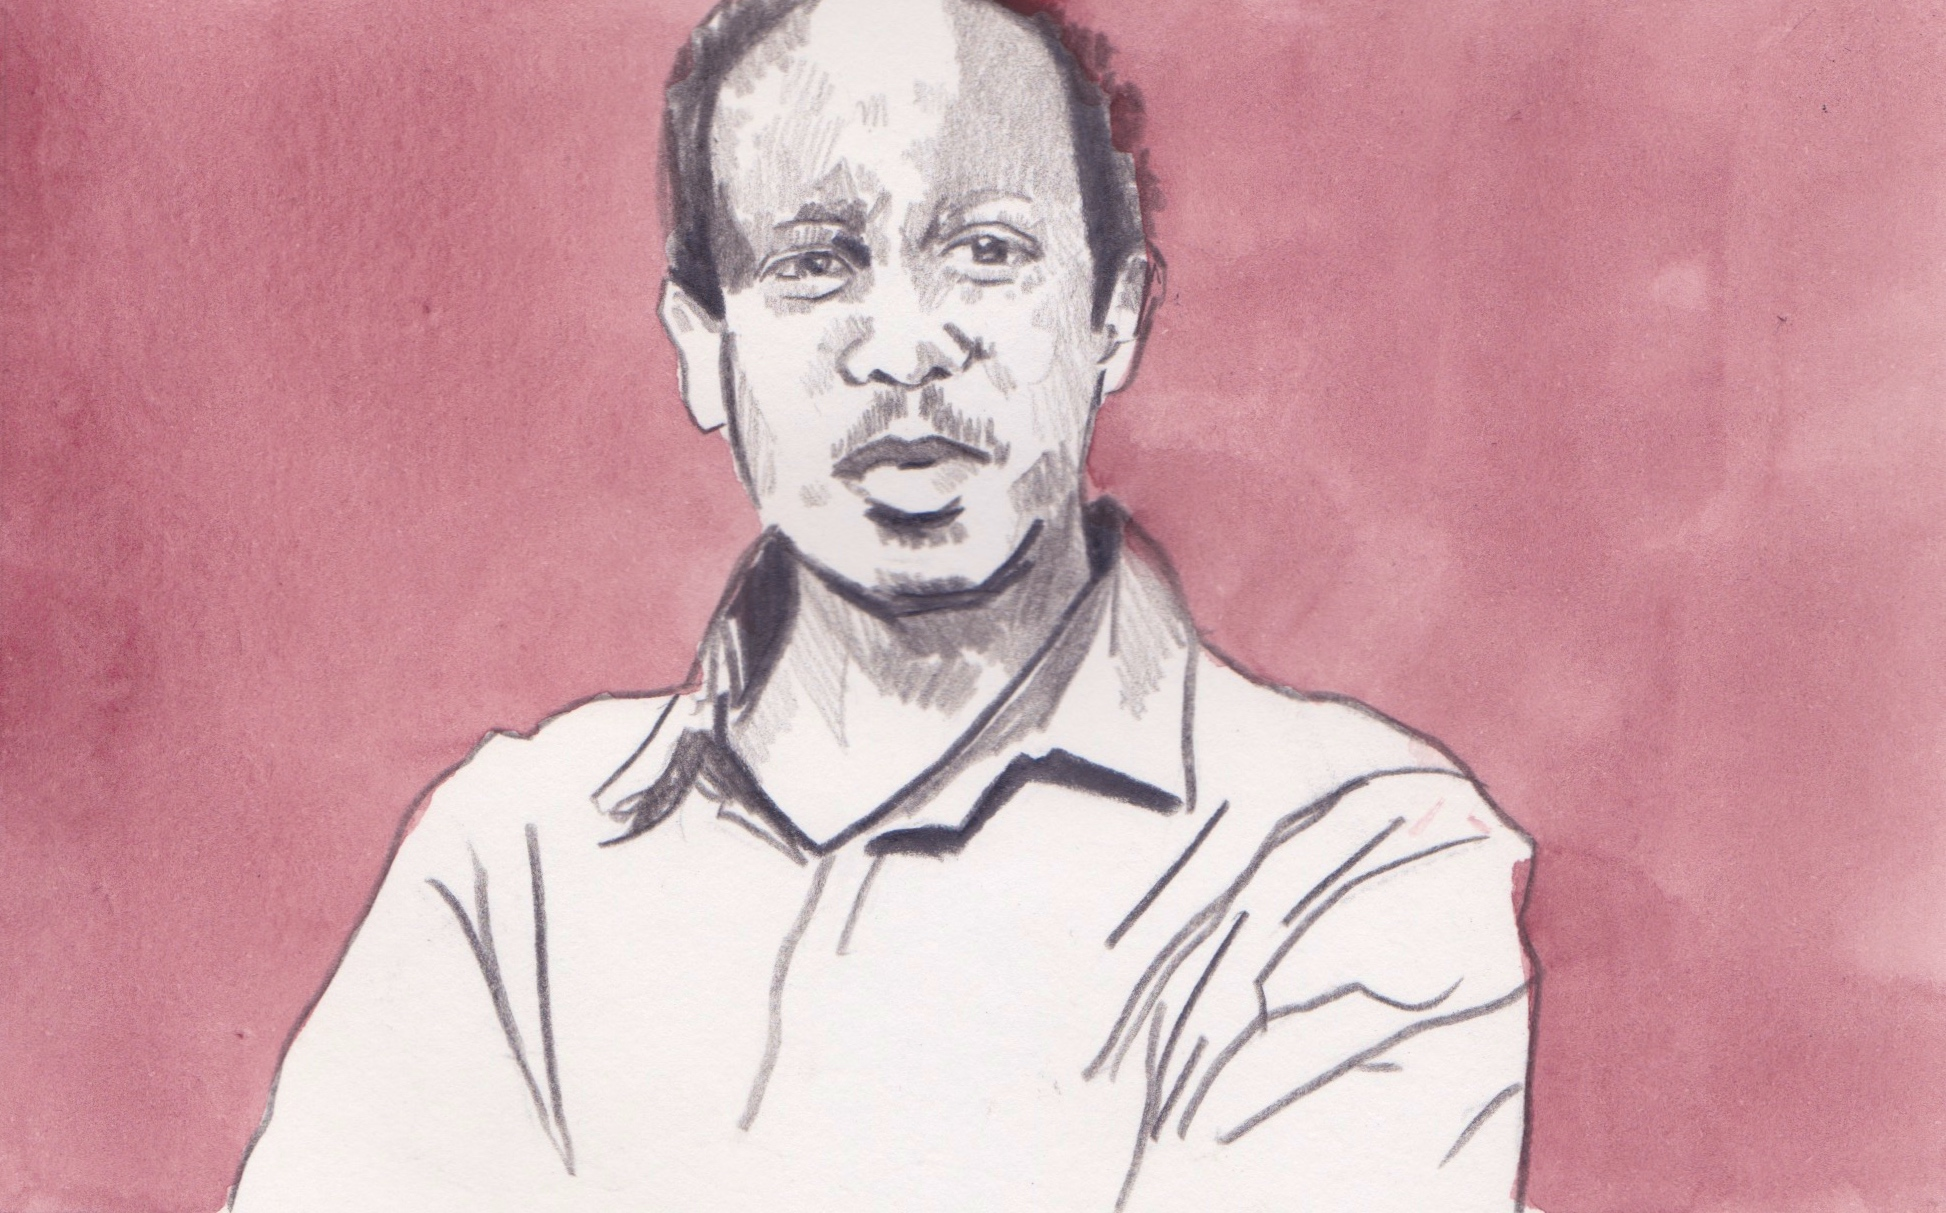 02/05/15 Redaezghi Tesfay Hagos 40, who was tortured in his home country, fled Eritrea and now lives in a centre run by the Red Cross on the outskirts of Rome. He is the son of a middle-class bank clerk in the capital Asmara